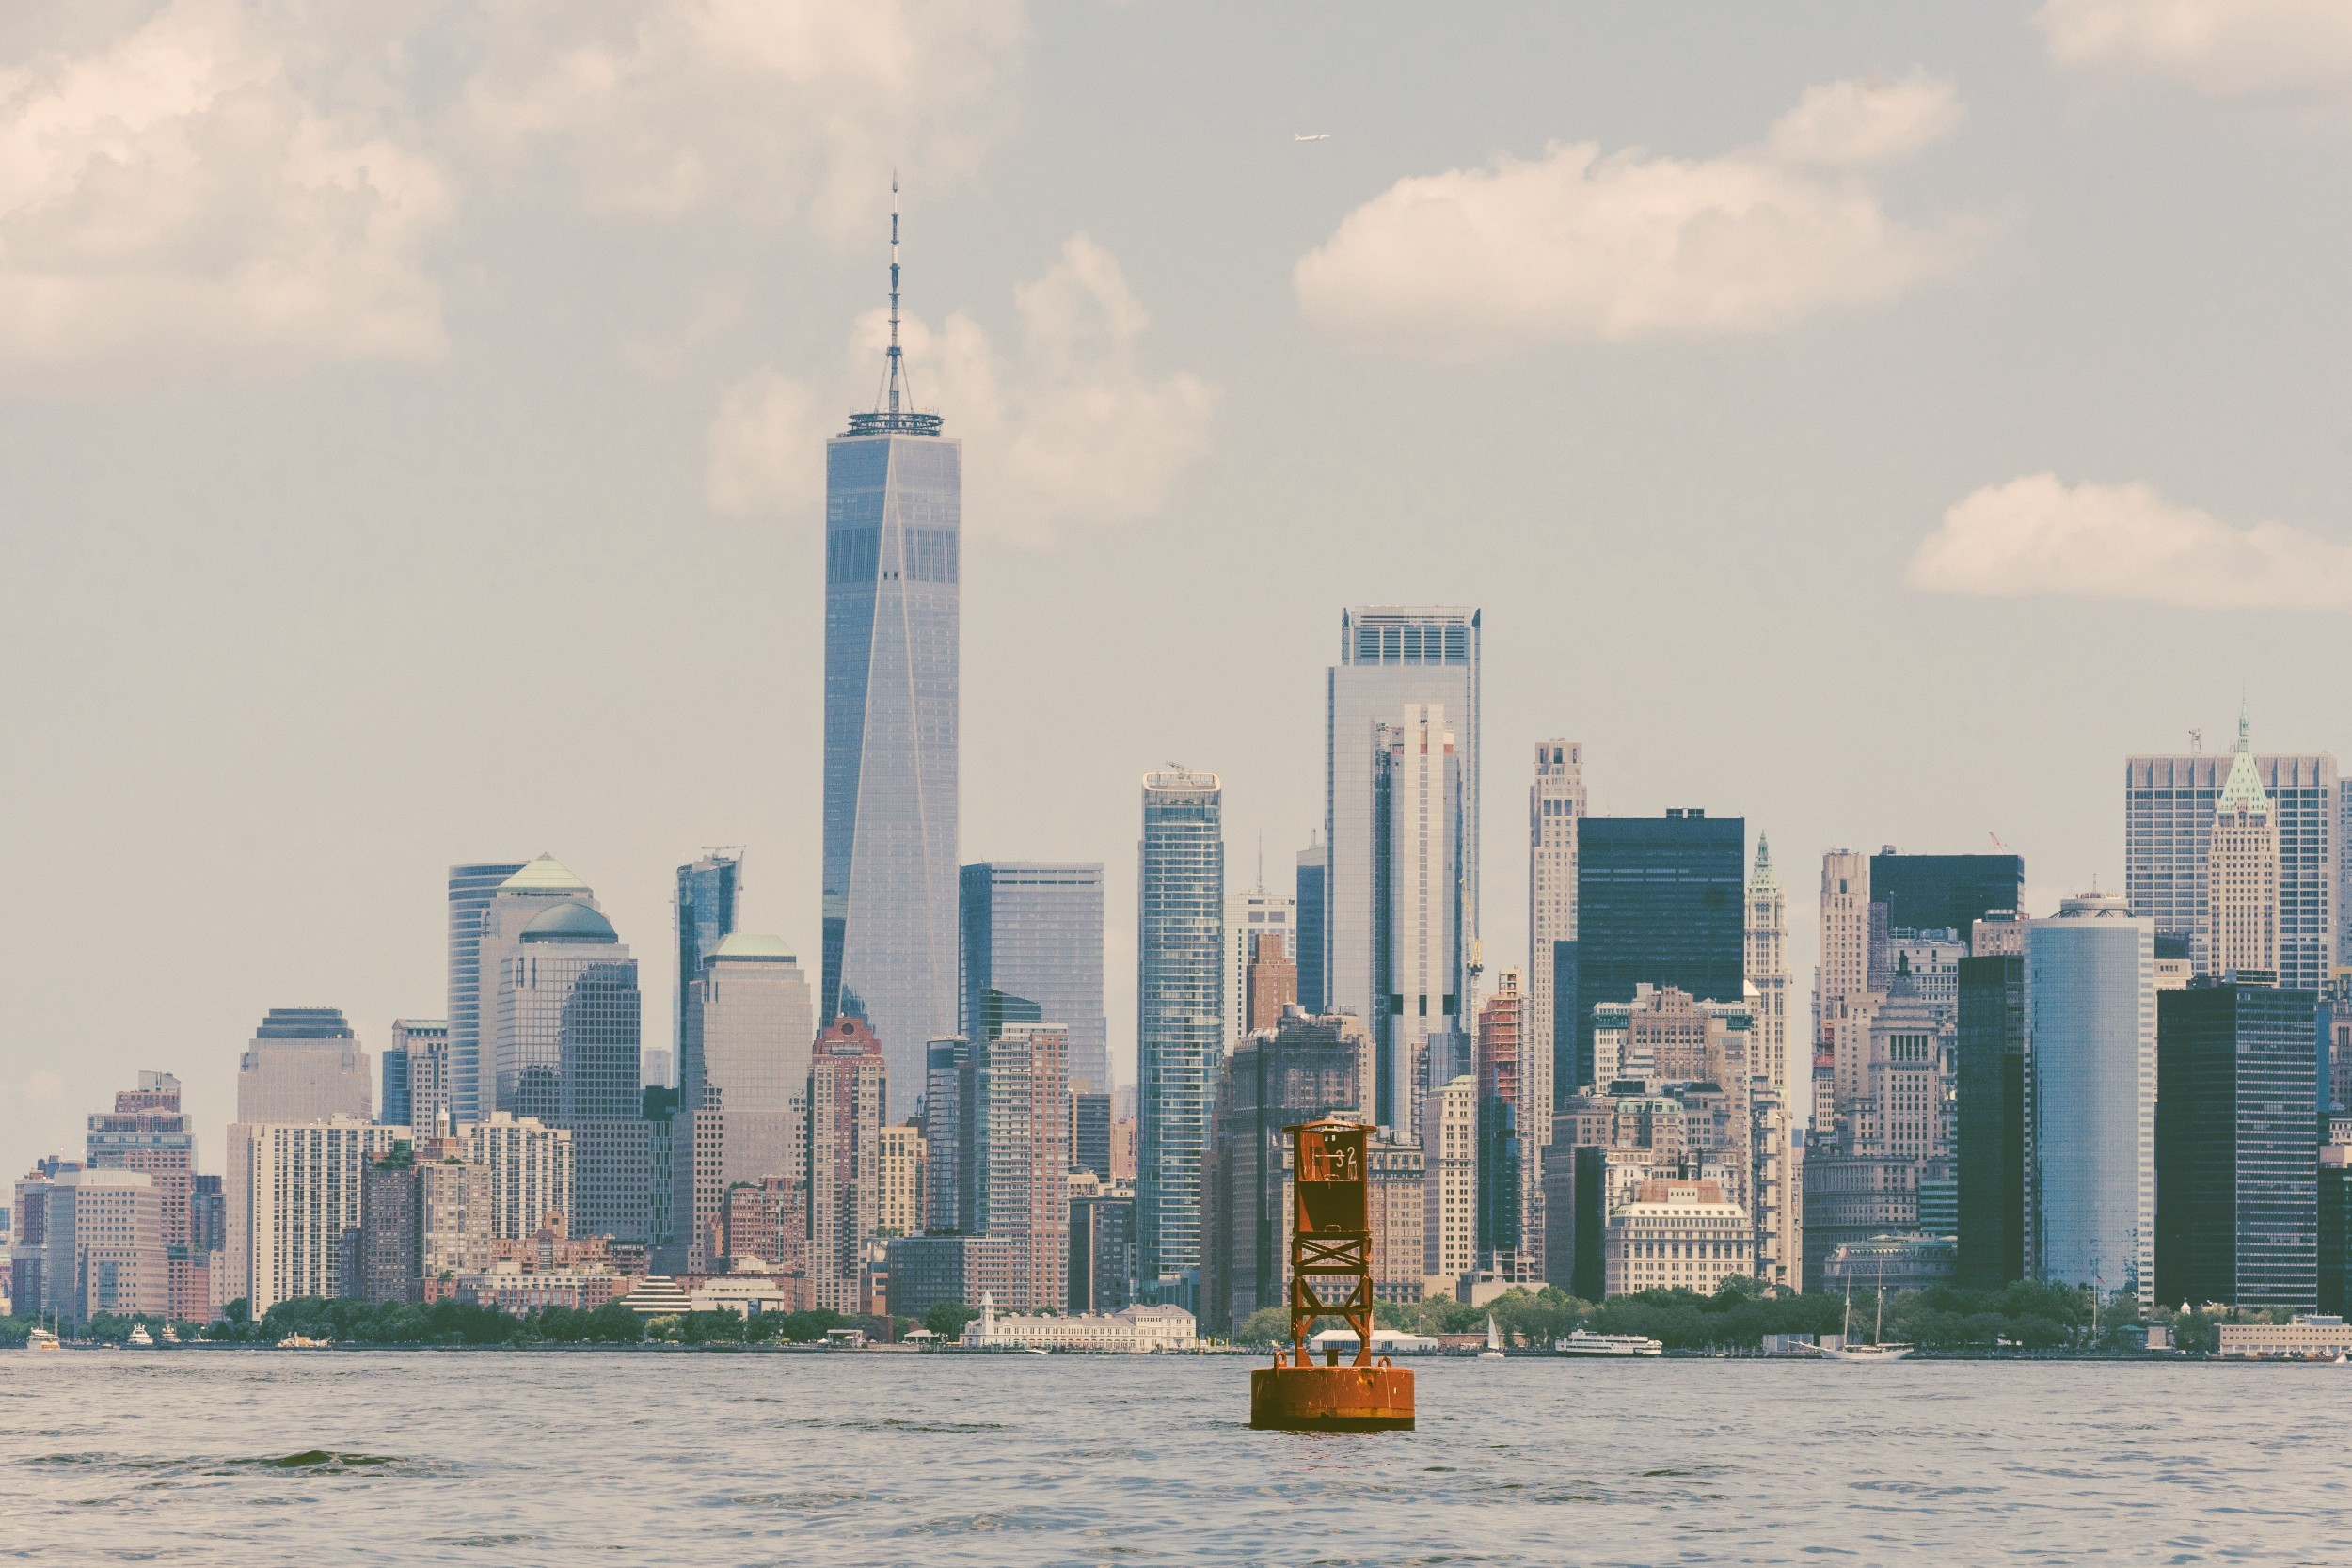 The World Trade Center as seen from New York Harbor